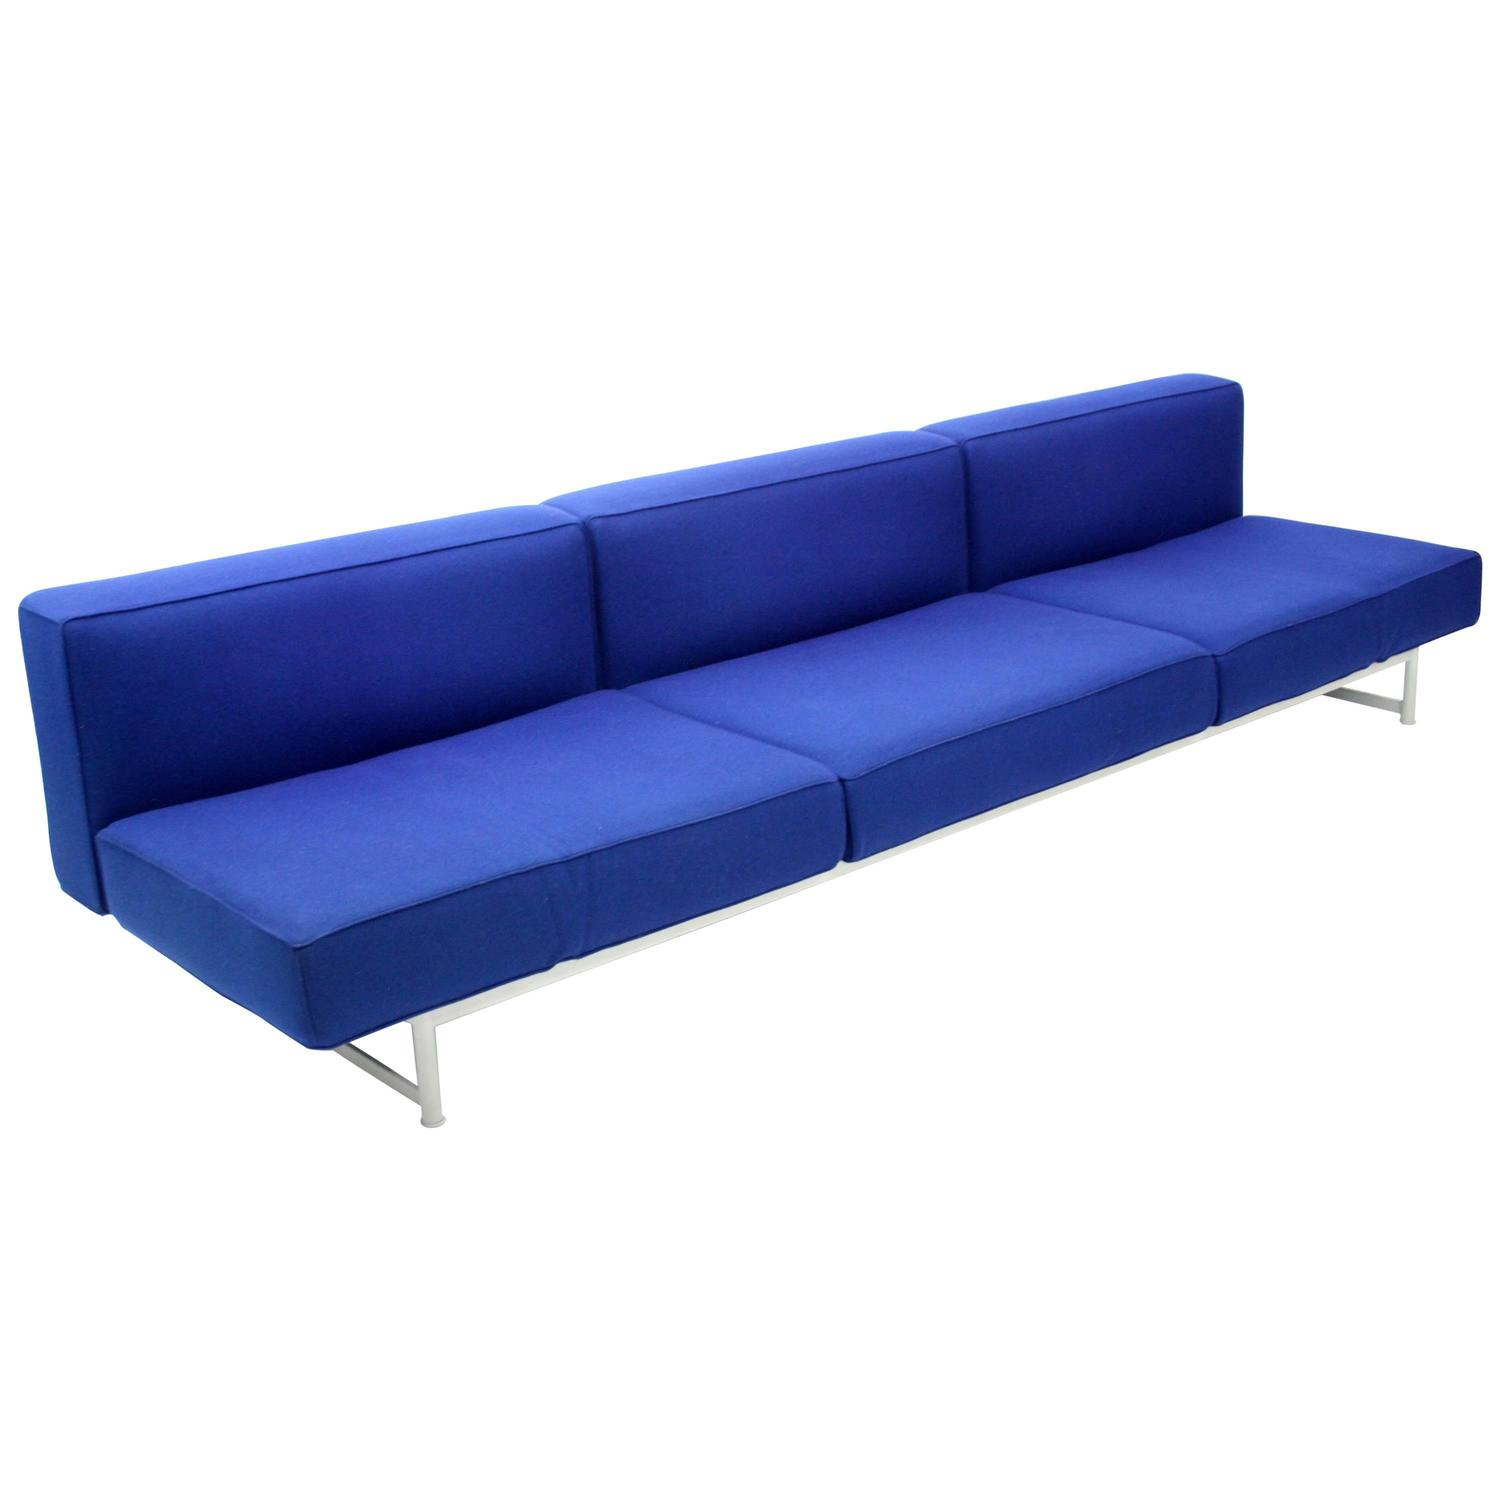 Piero lissoni reef sofa for cassina in blue felt for sale for Blue couches for sale